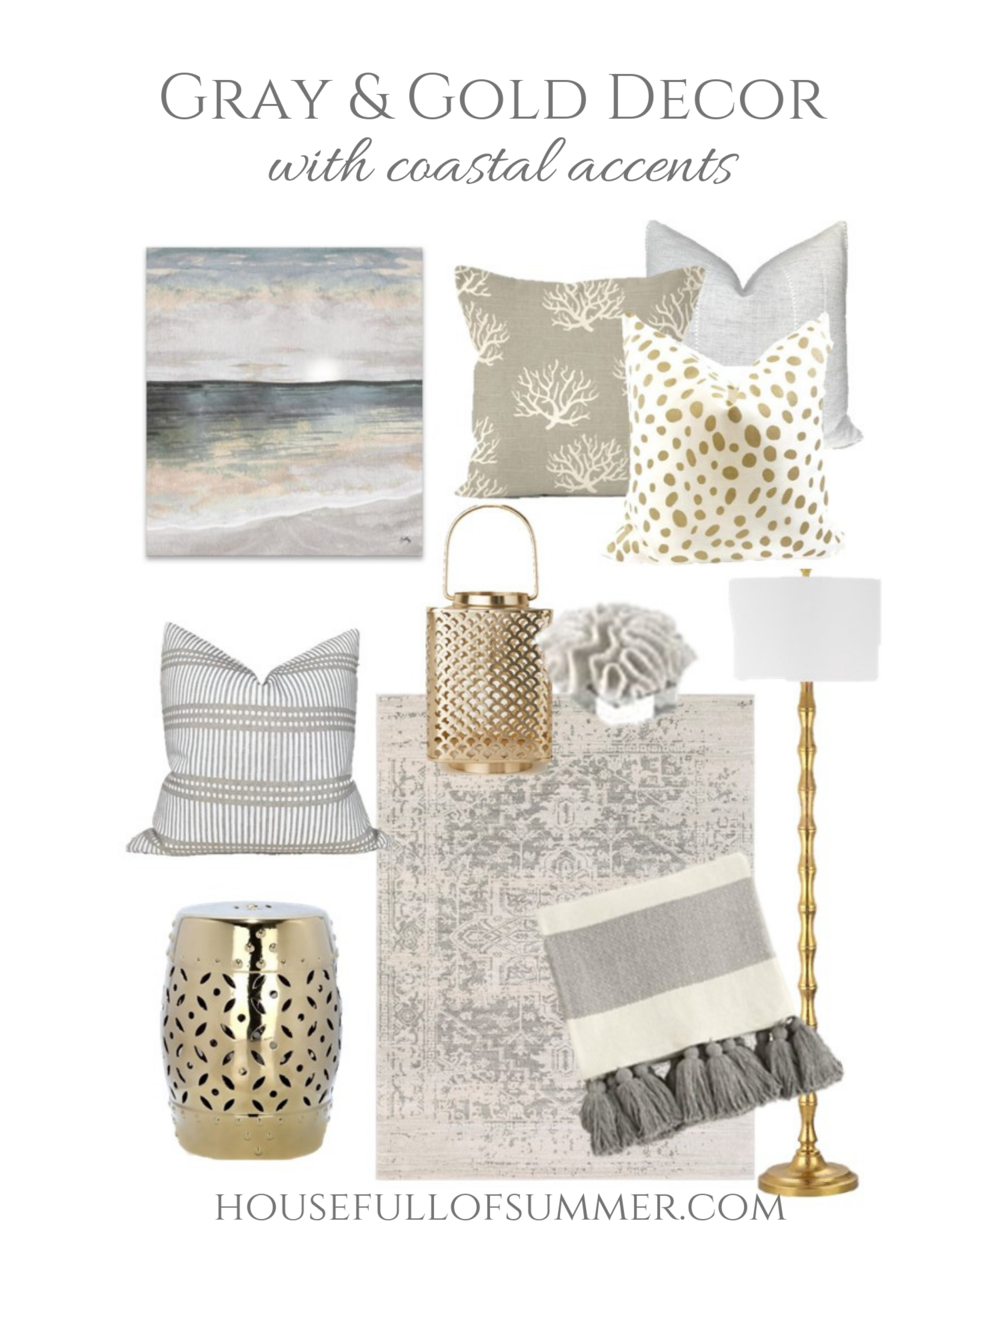 Gray and Gold Decor Mood Board - Plus how to easily make a space feel coastal. Easy decor switches to take you from one season to the next! | House Full of Summer, coastal decor, living room design, coastal chic living room styling, gold mirror, neutral beach decor, gray beach painting art, glam decor #housefullofsummer #coastaldecor